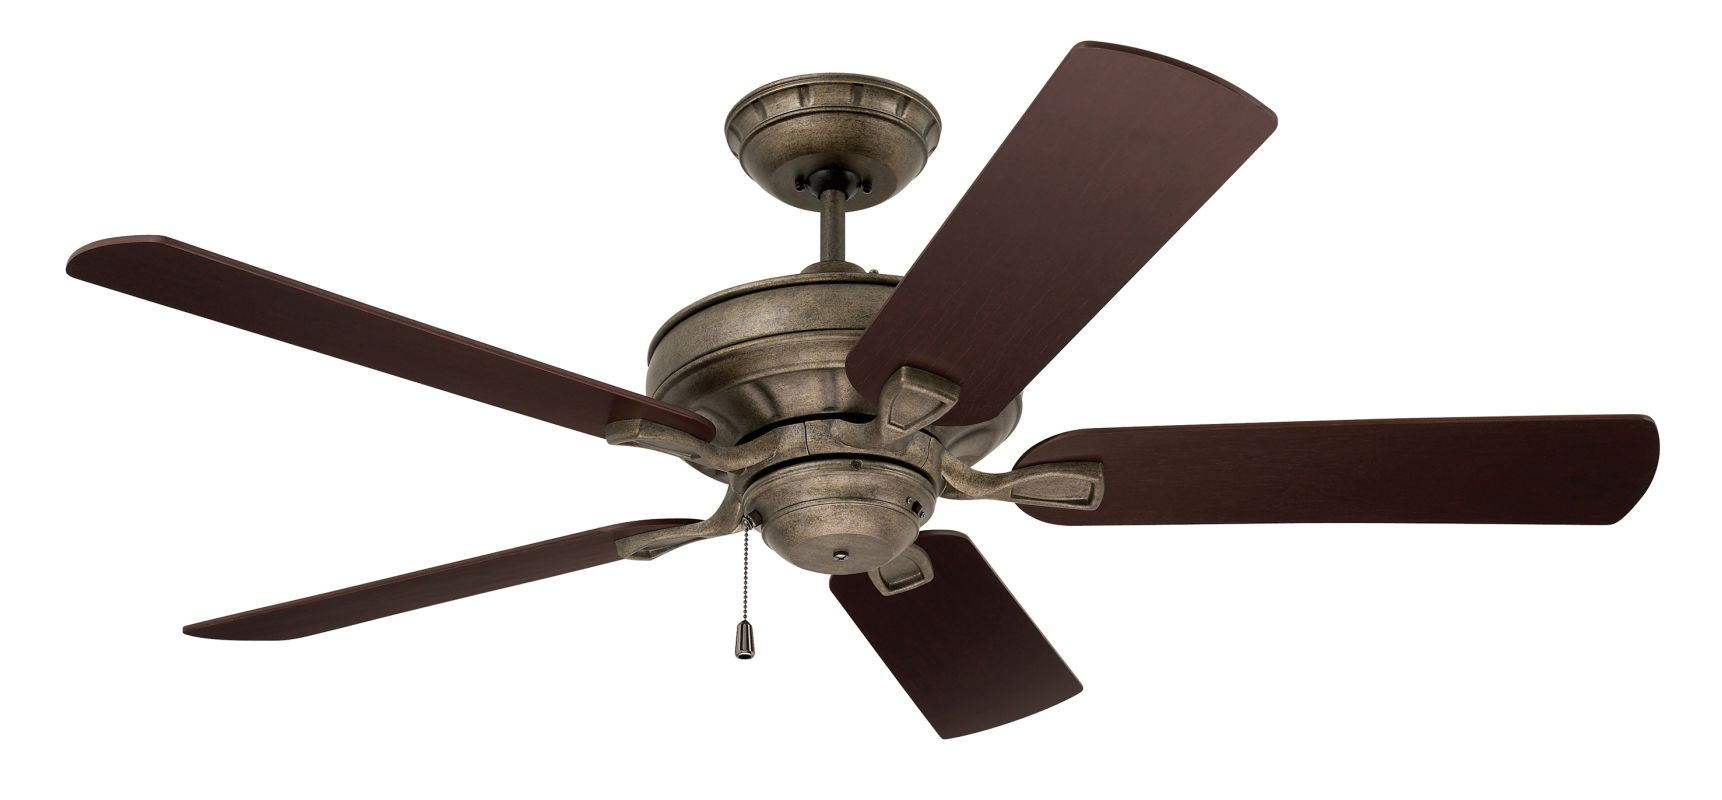 "Emerson CF452 Bella 52"" 5 Blade Ceiling Fan - Blades Included Vintage"